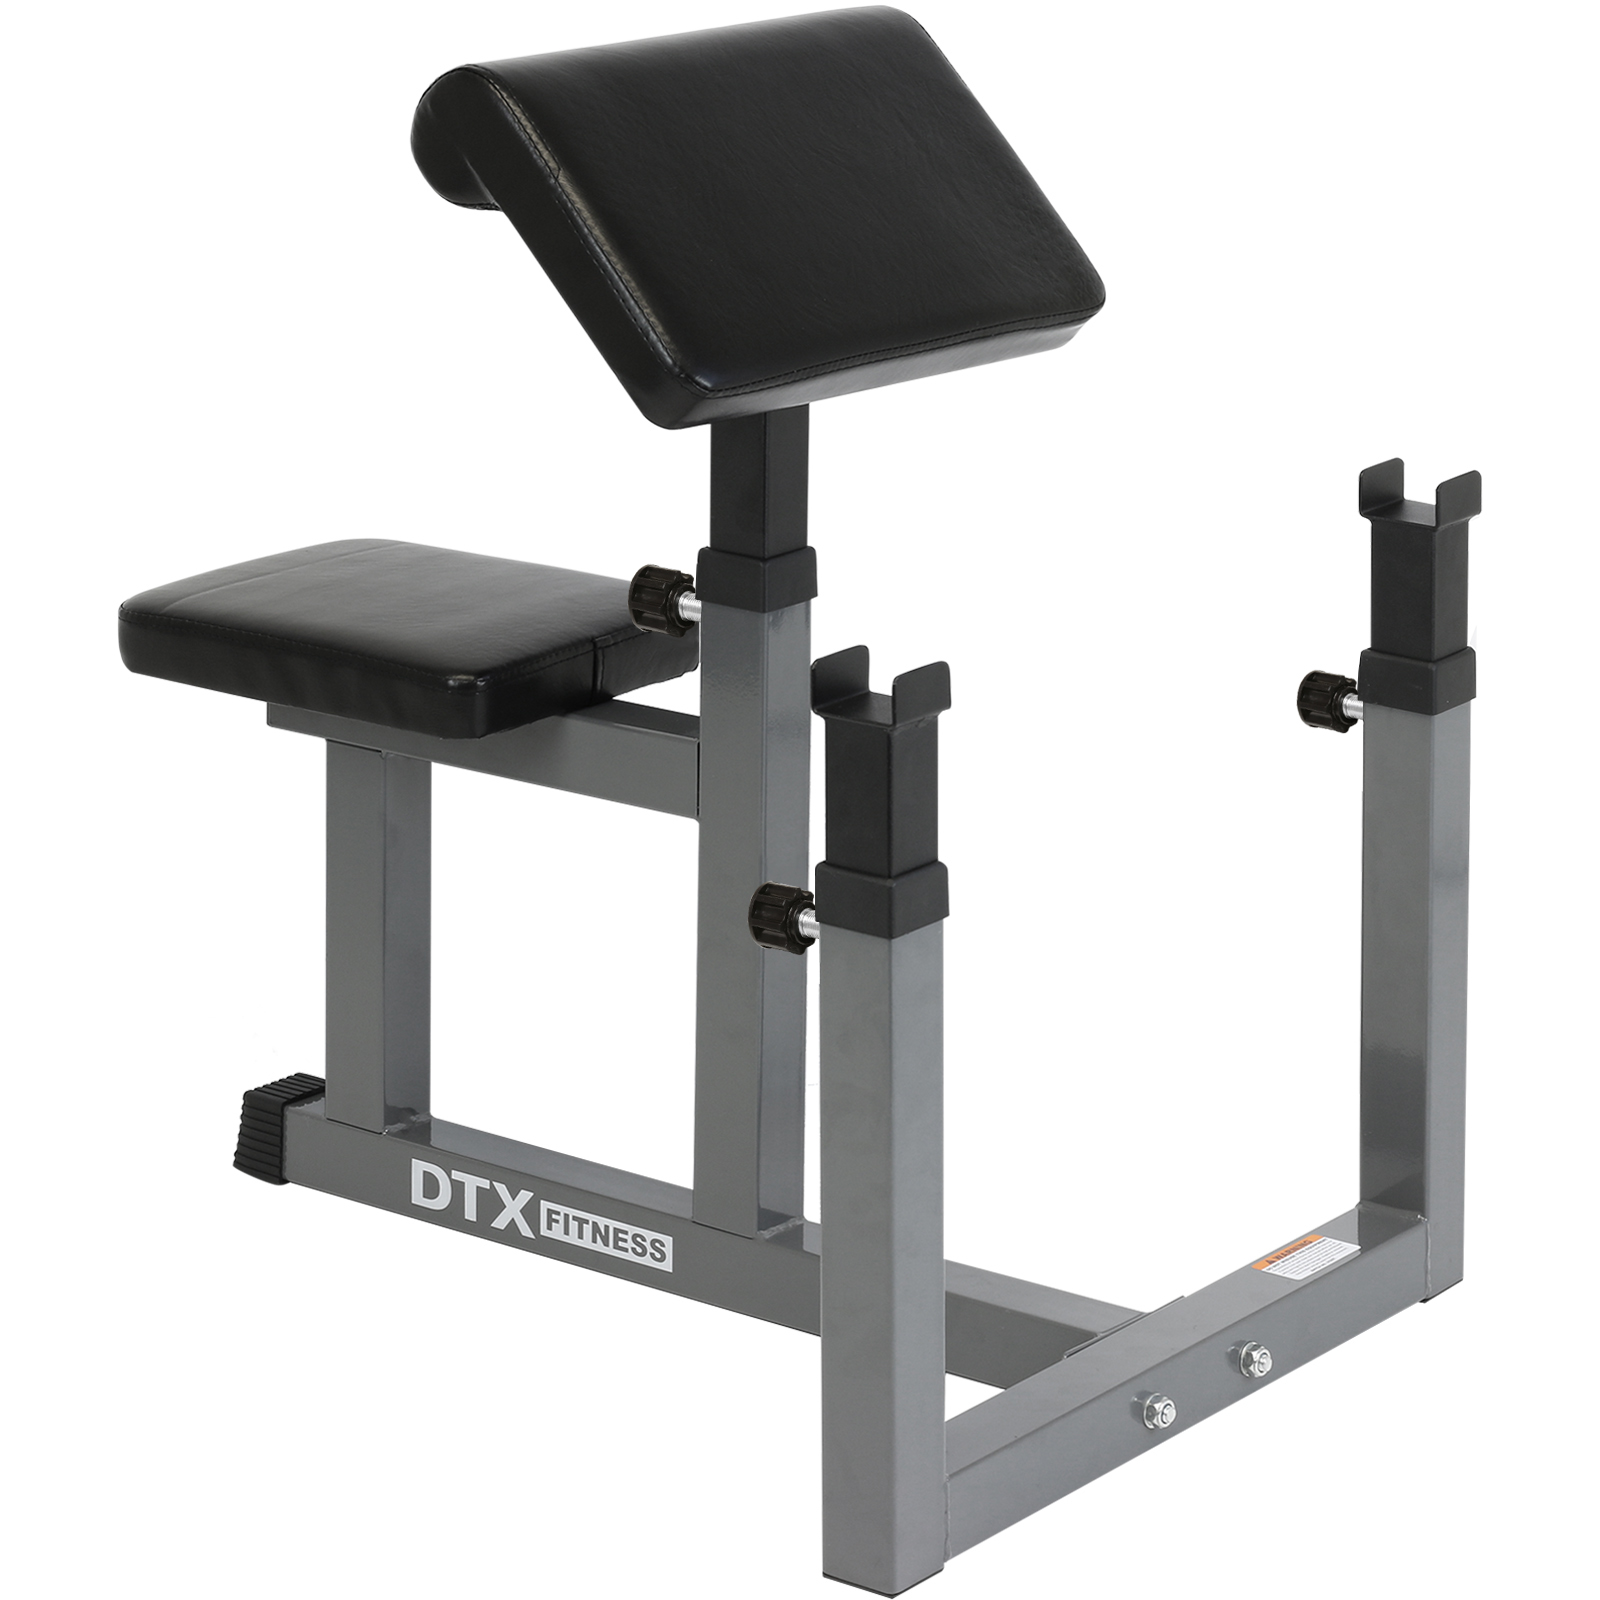 dtx fitness preacher arm curl barbell weight bench bicep